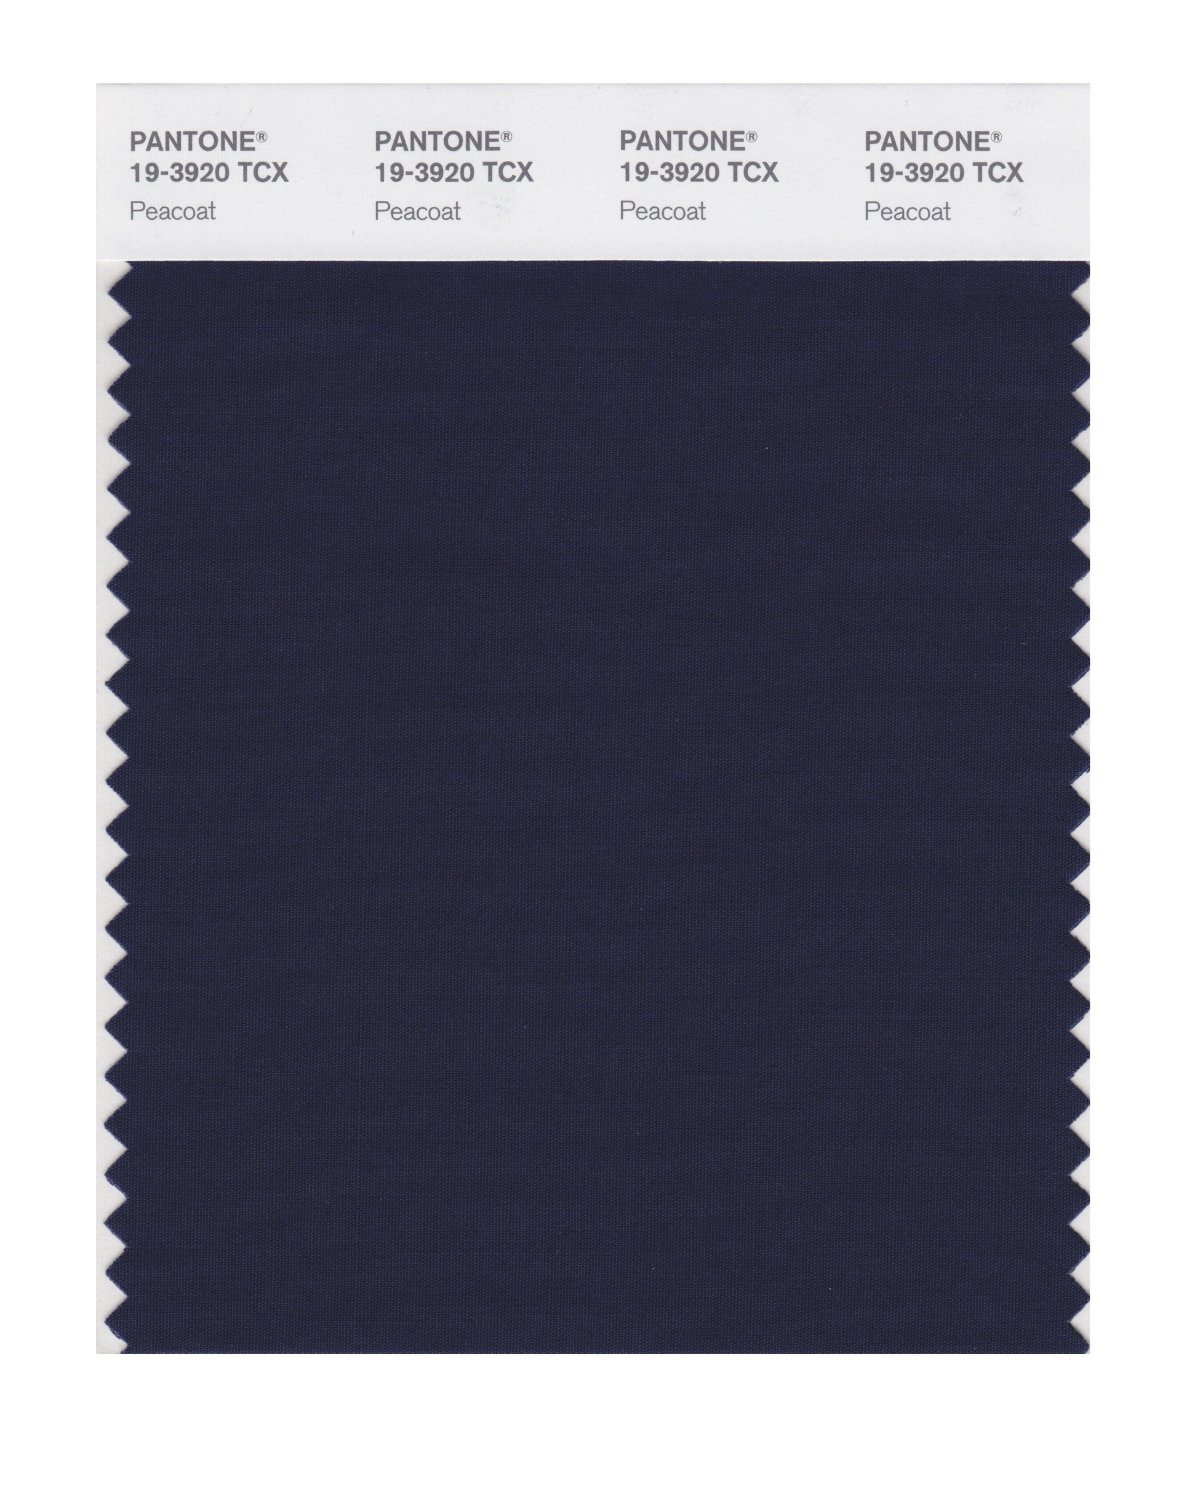 Pantone Smart Swatch 19-3920 Peacoat